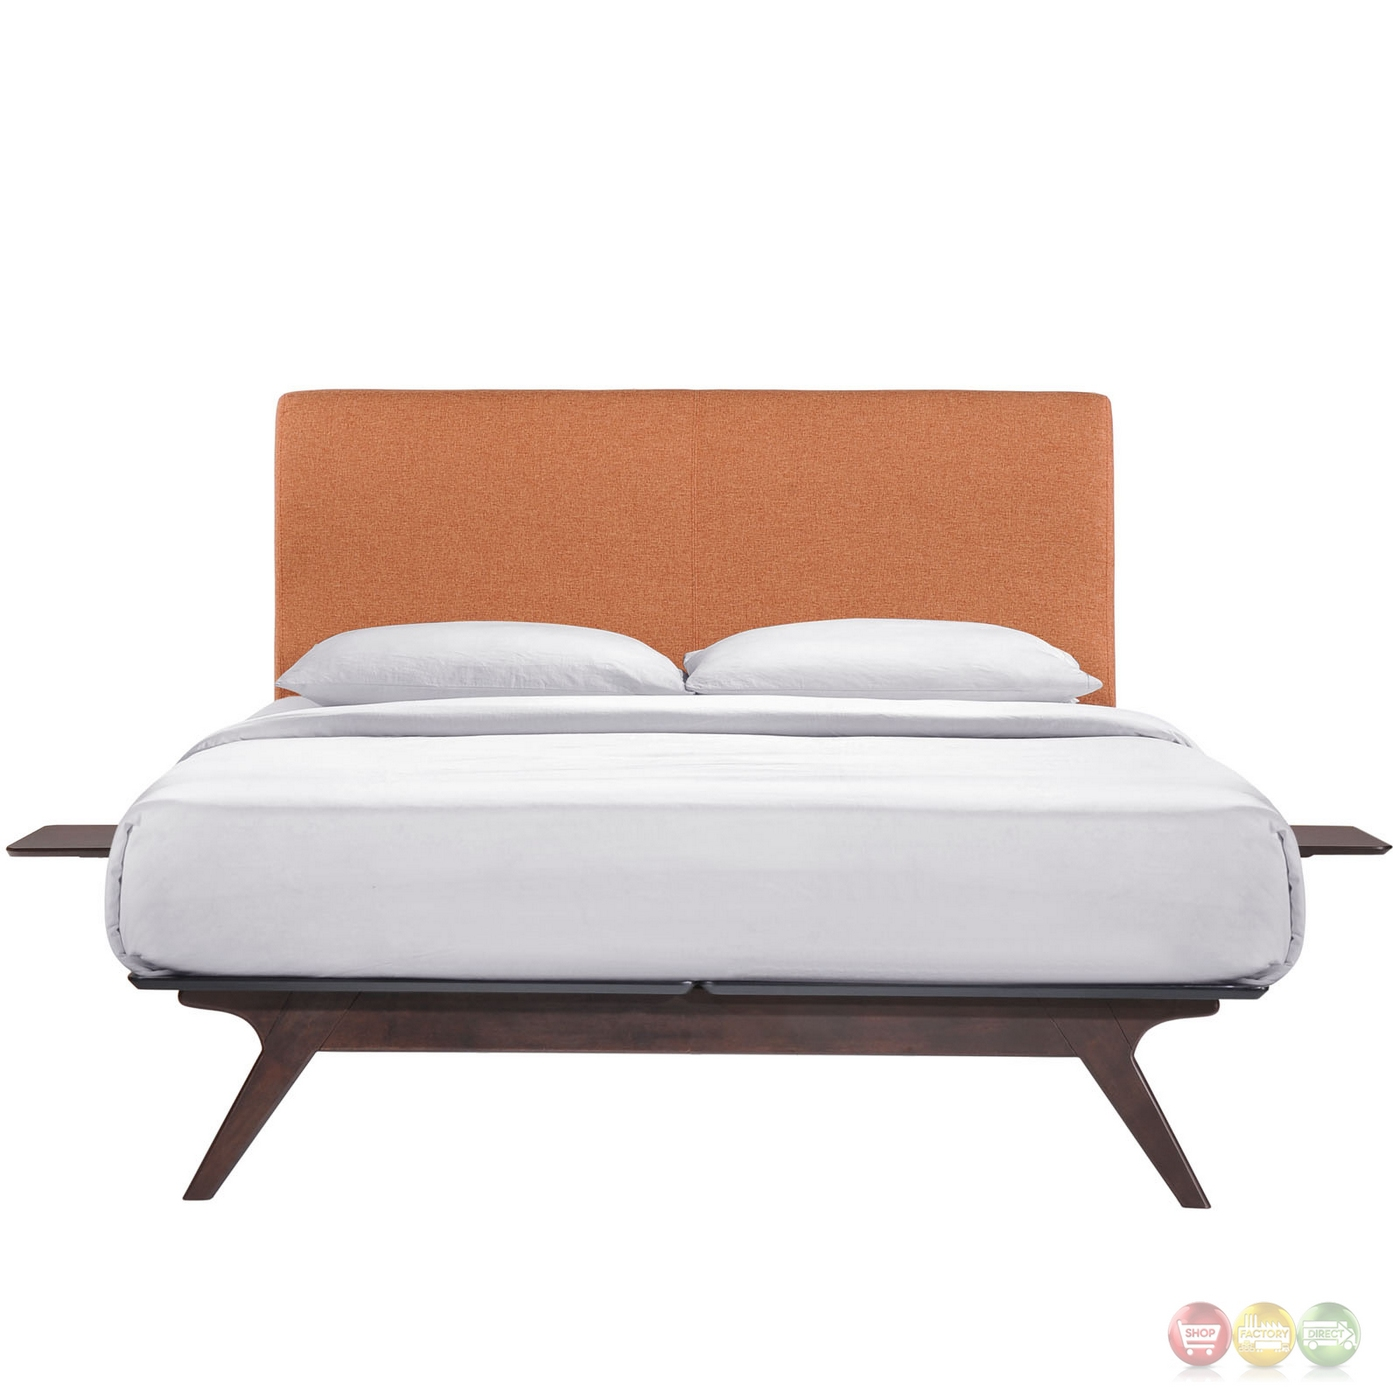 tracy mid century upholstered king platform bed with